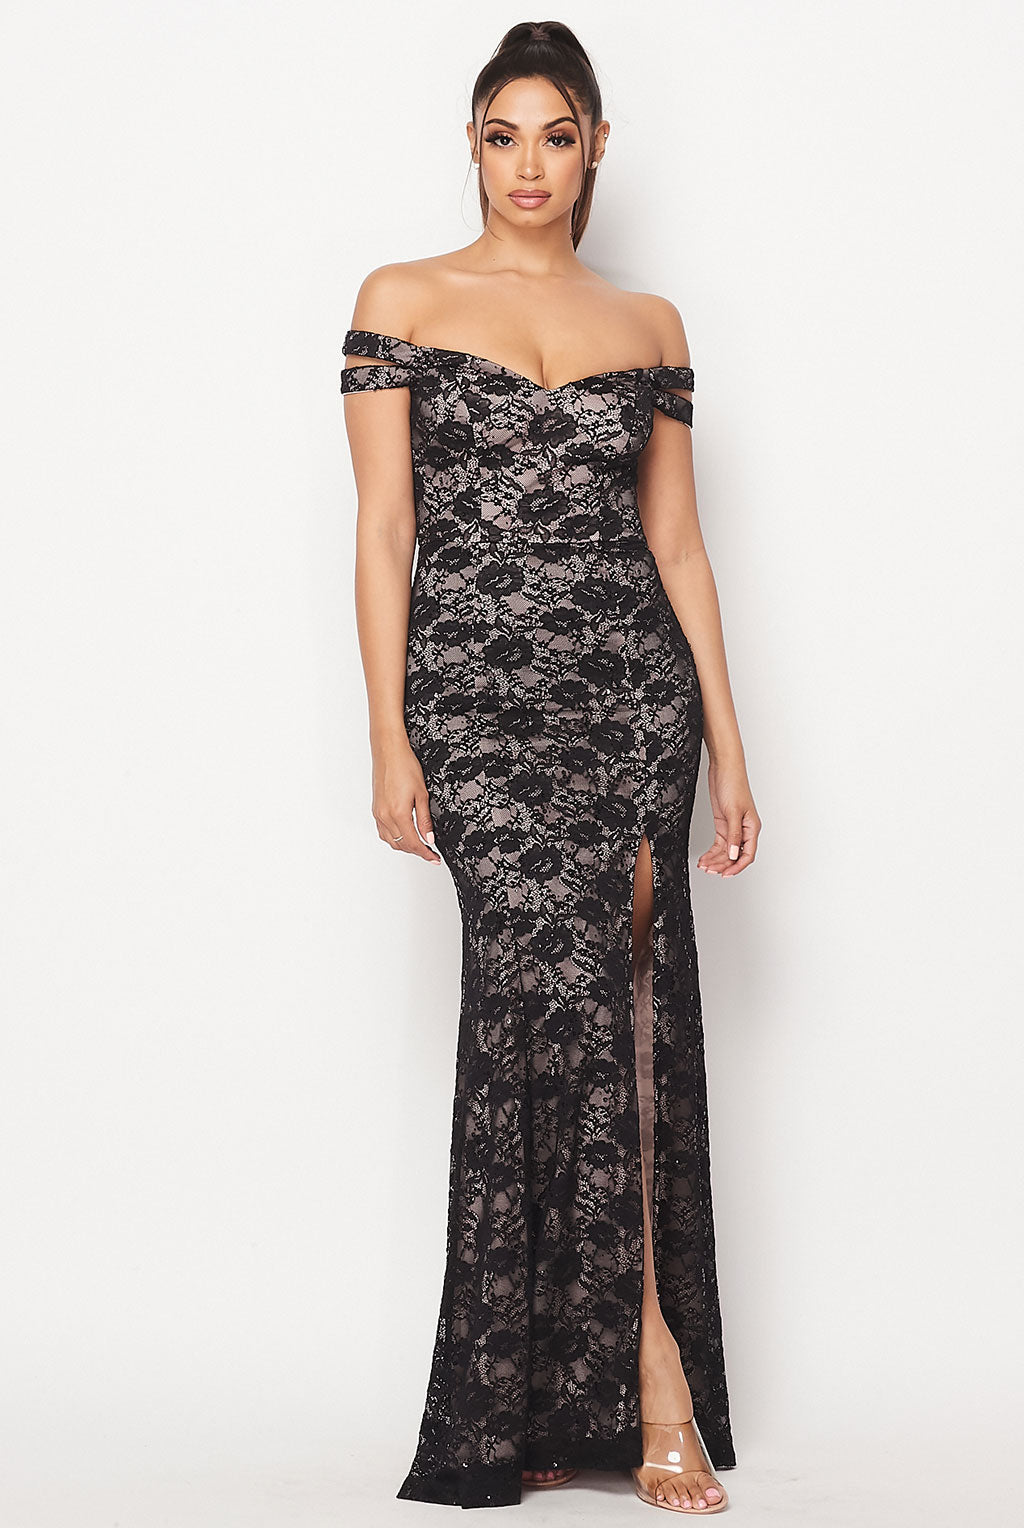 Teeze Me | Off the Shoulder Lace Long Dress | Black/Nude